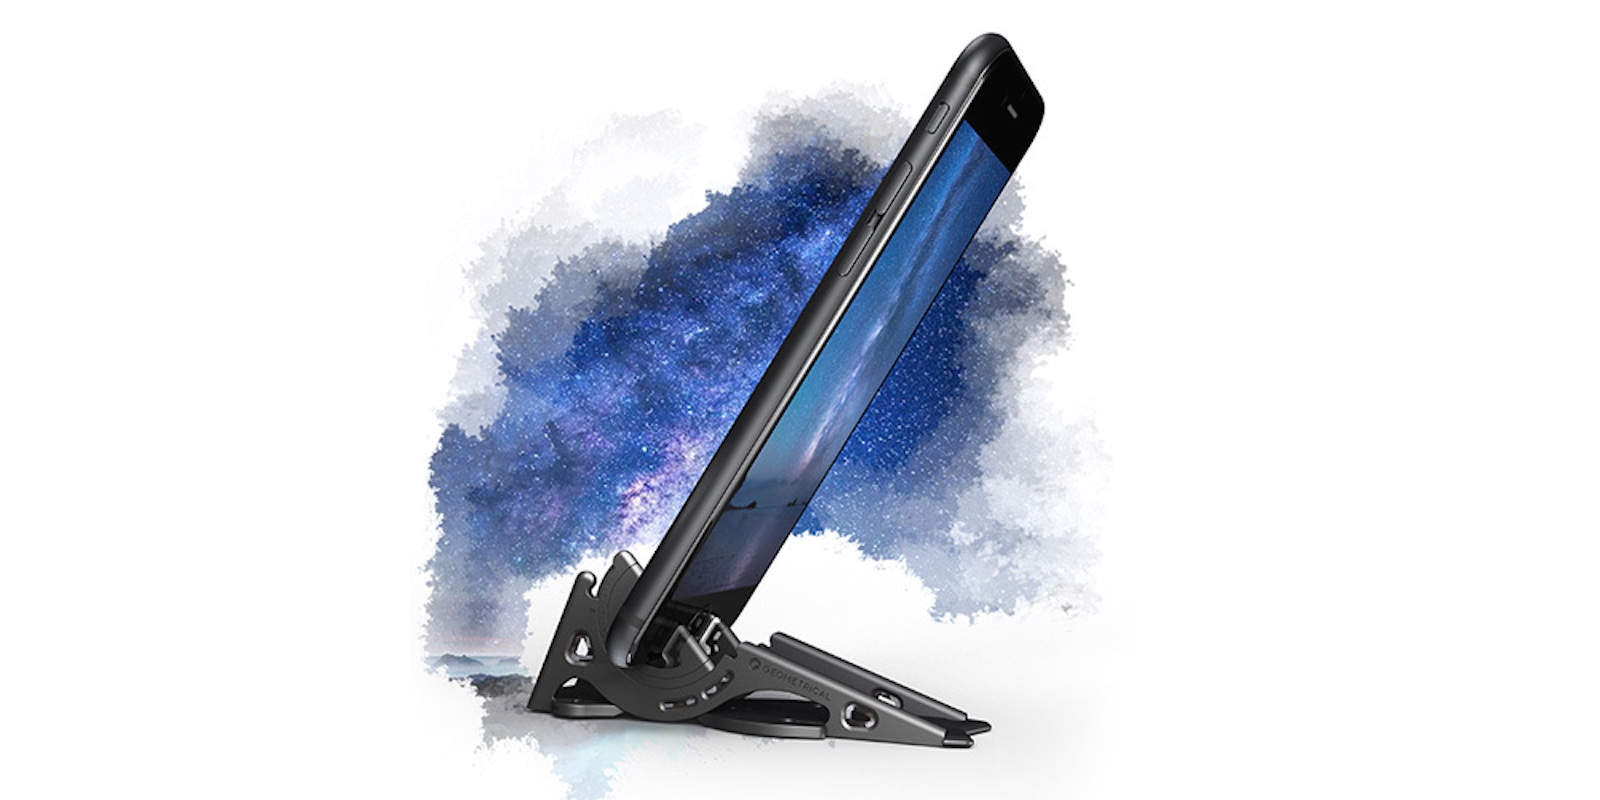 This fully featured, sturdy tripod folds up into credit card size and fits right into your wallet.